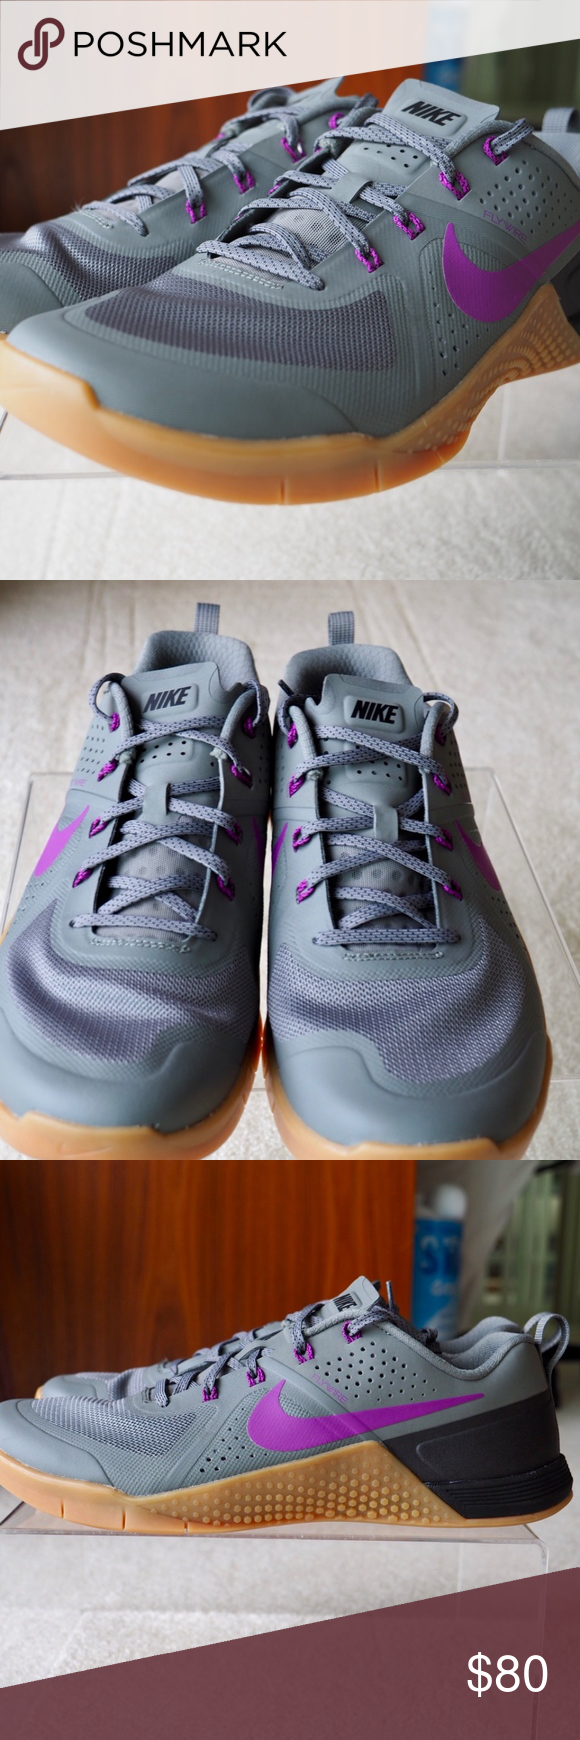 1bf723161c16 Nike Metcon 1 Cross Training Shoe New without tags box Style Code   704688-050 Color  Tumbled Grey Gum-Vivid Purple Nike Shoes Athletic Shoes